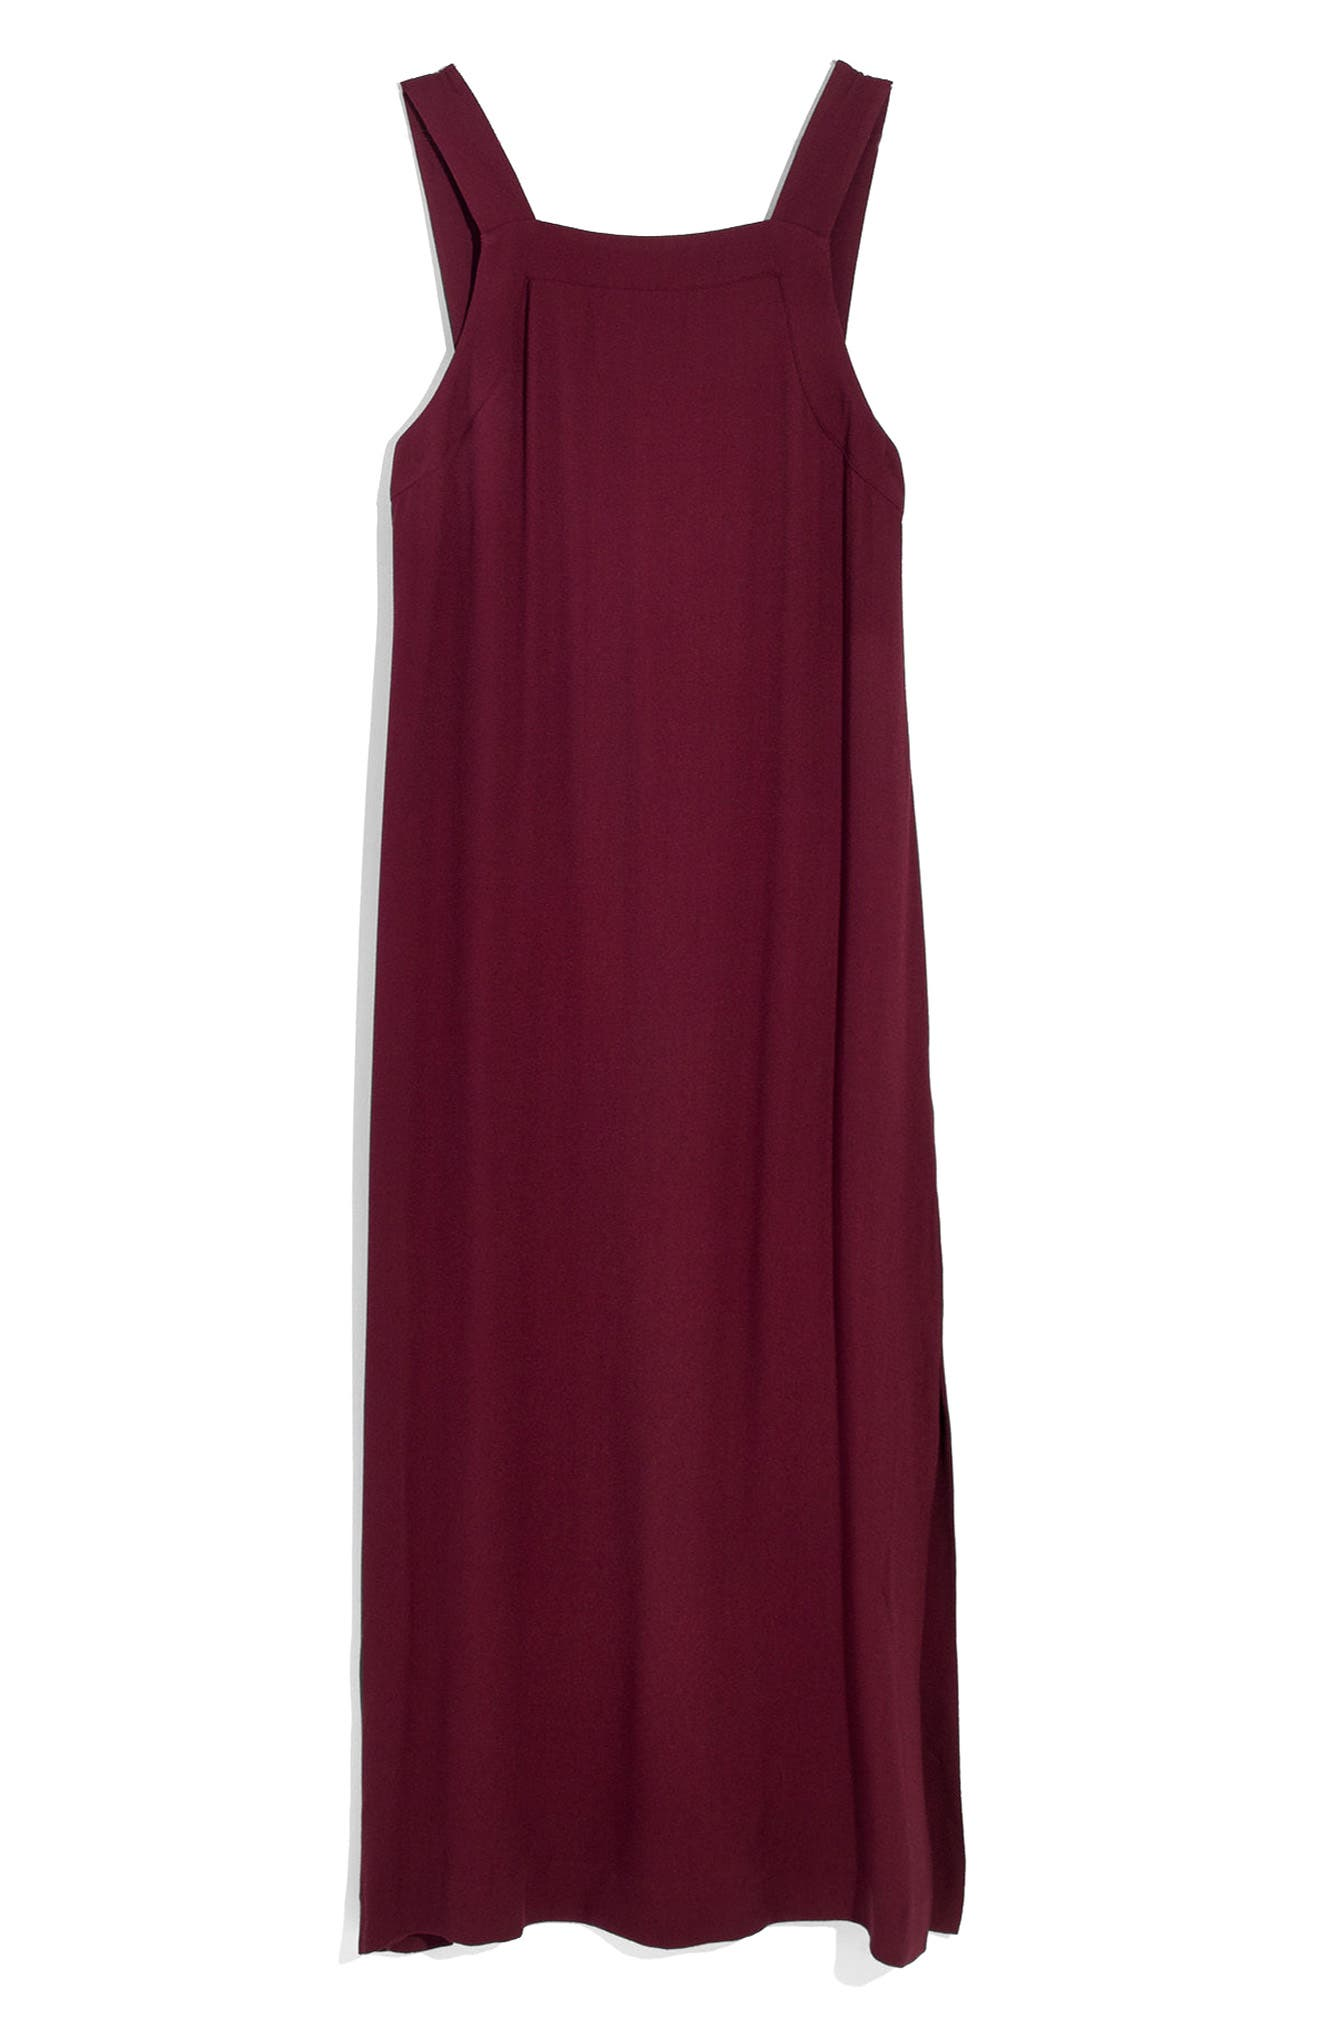 Apron Tie Back Dress,                             Alternate thumbnail 3, color,